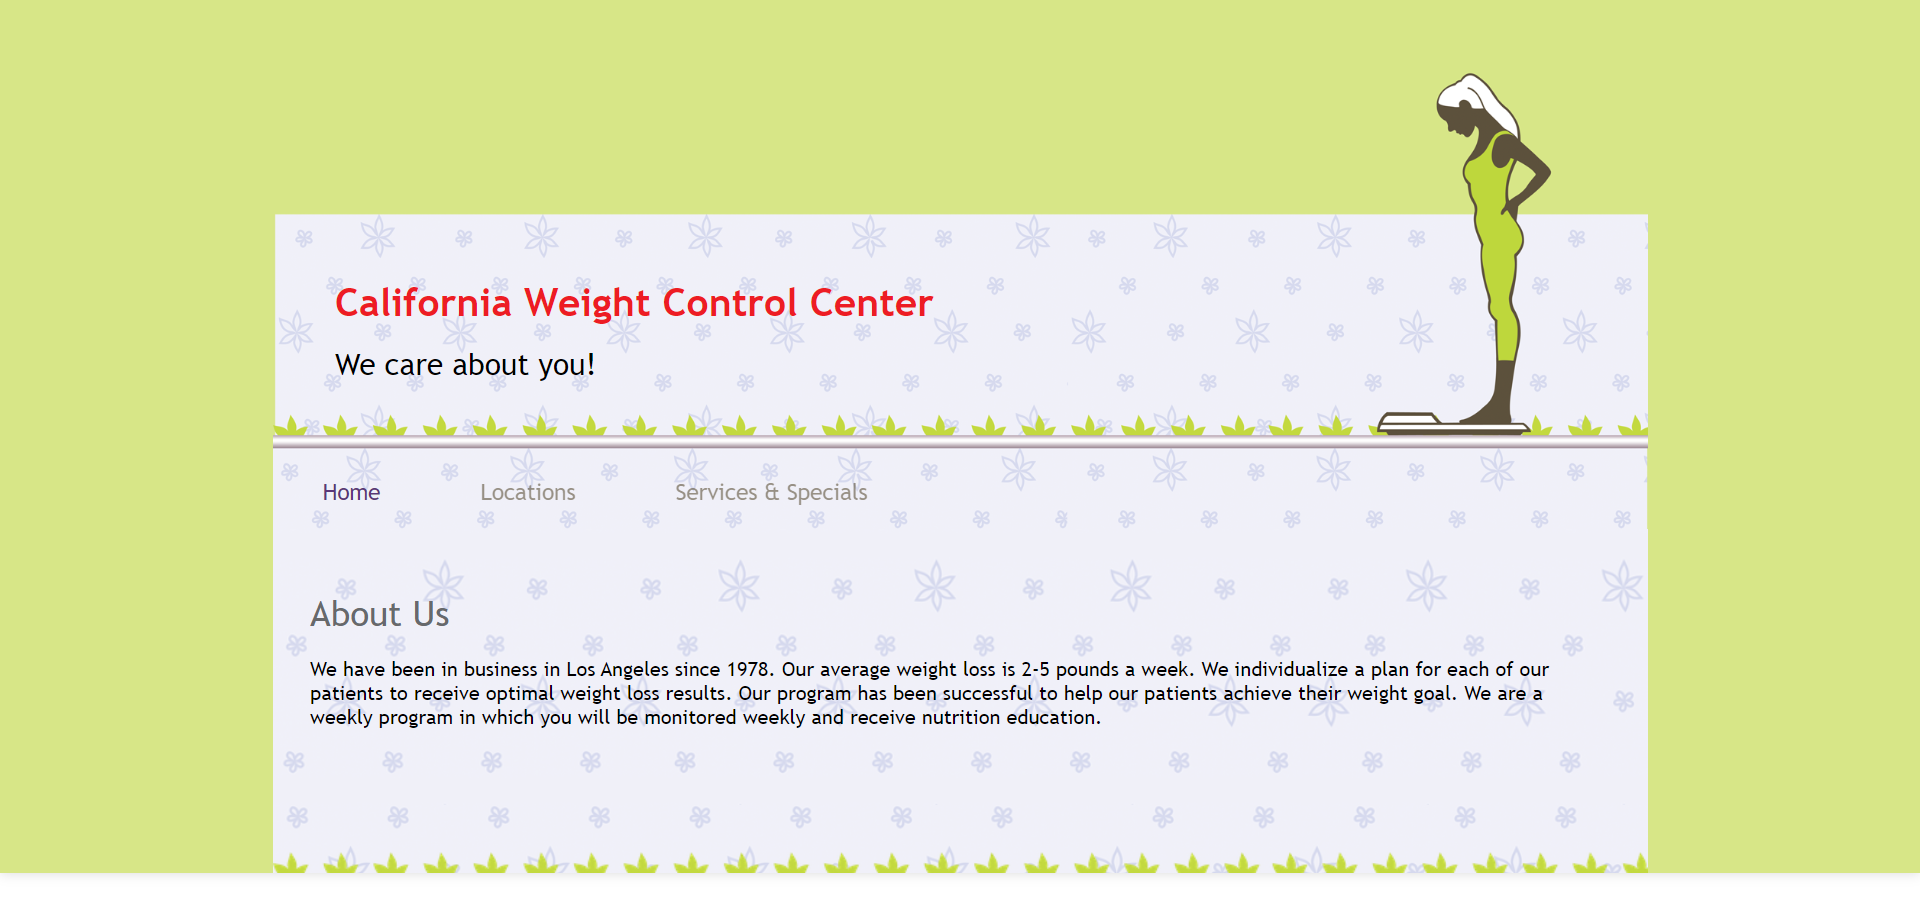 California Weight Control Center